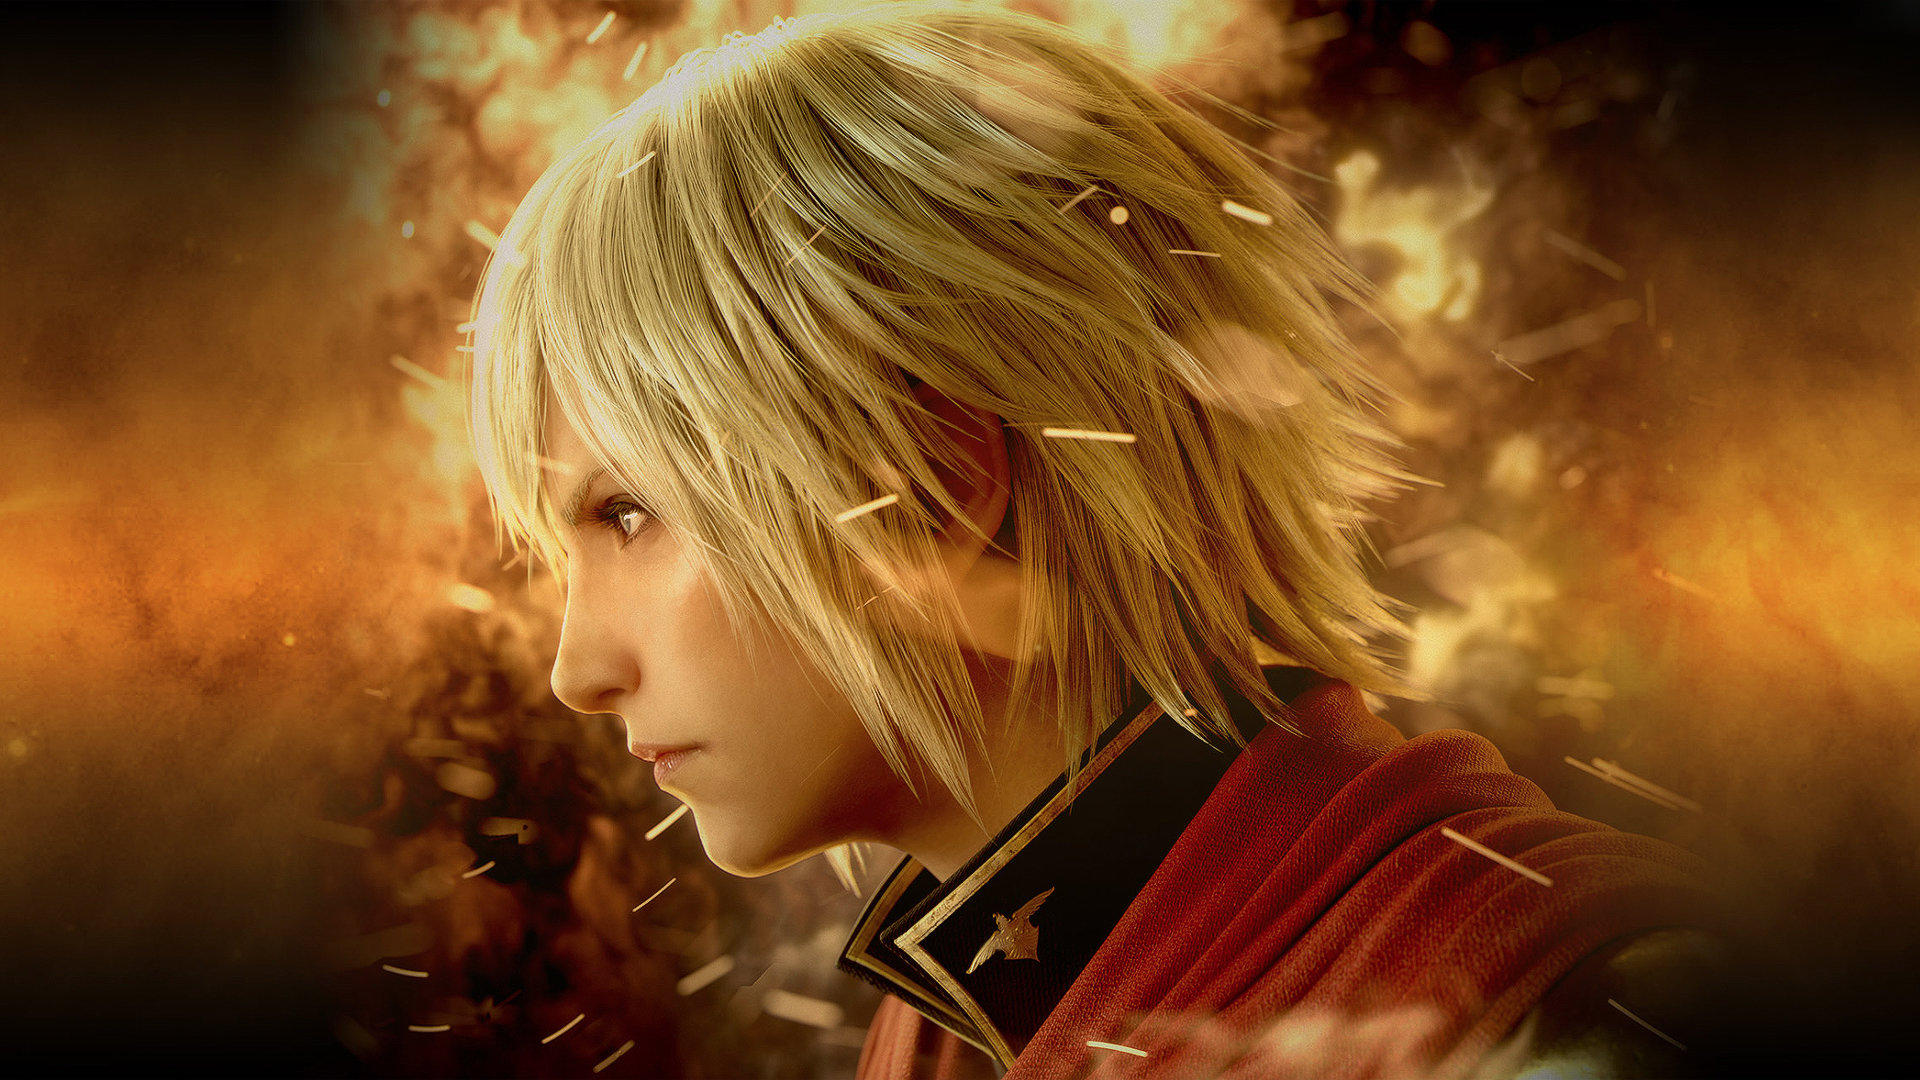 Final Fantasy Type 0 Wallpapers Hd For Desktop Backgrounds